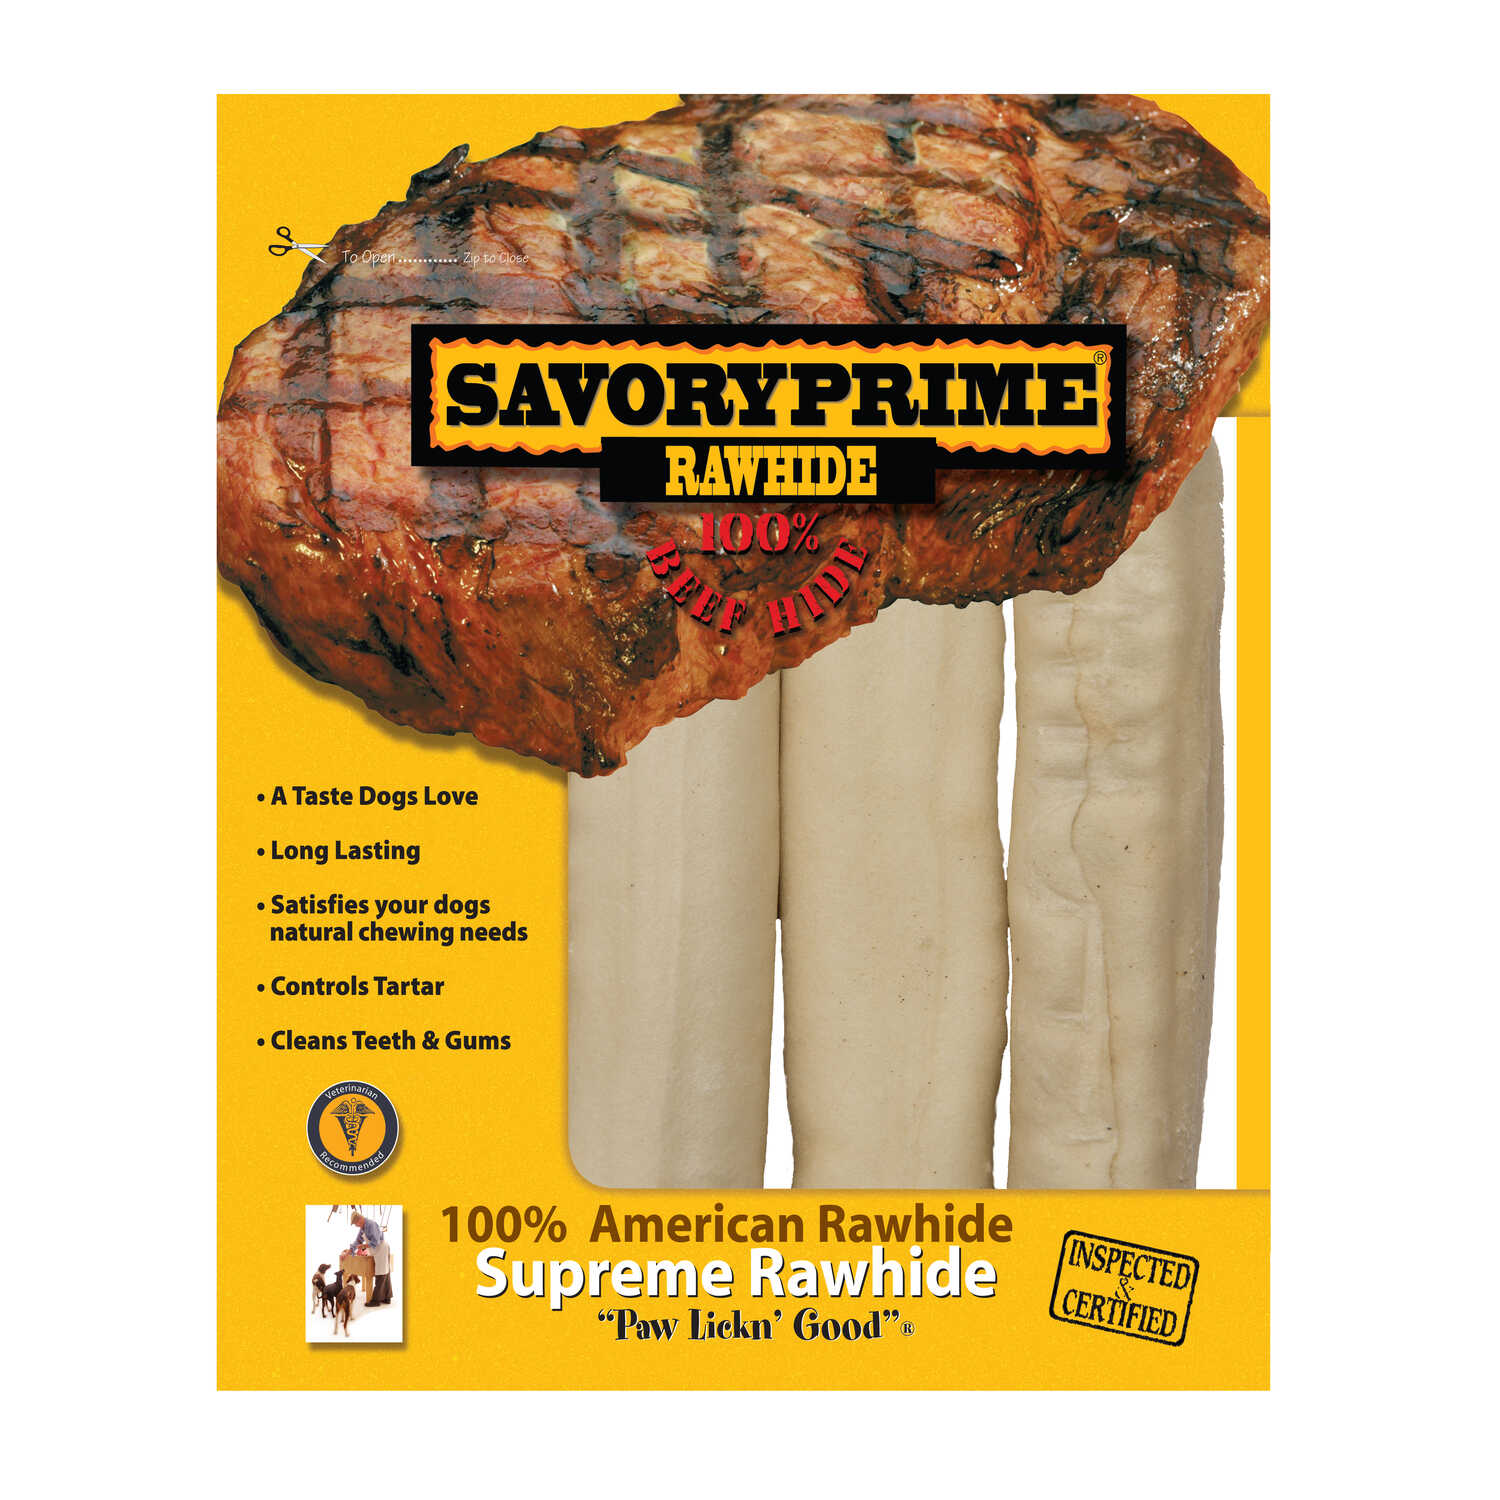 Savory Prime  All Size Dogs  Adult  Rawhide Bone  Natural  6-7 in. L 3 pk